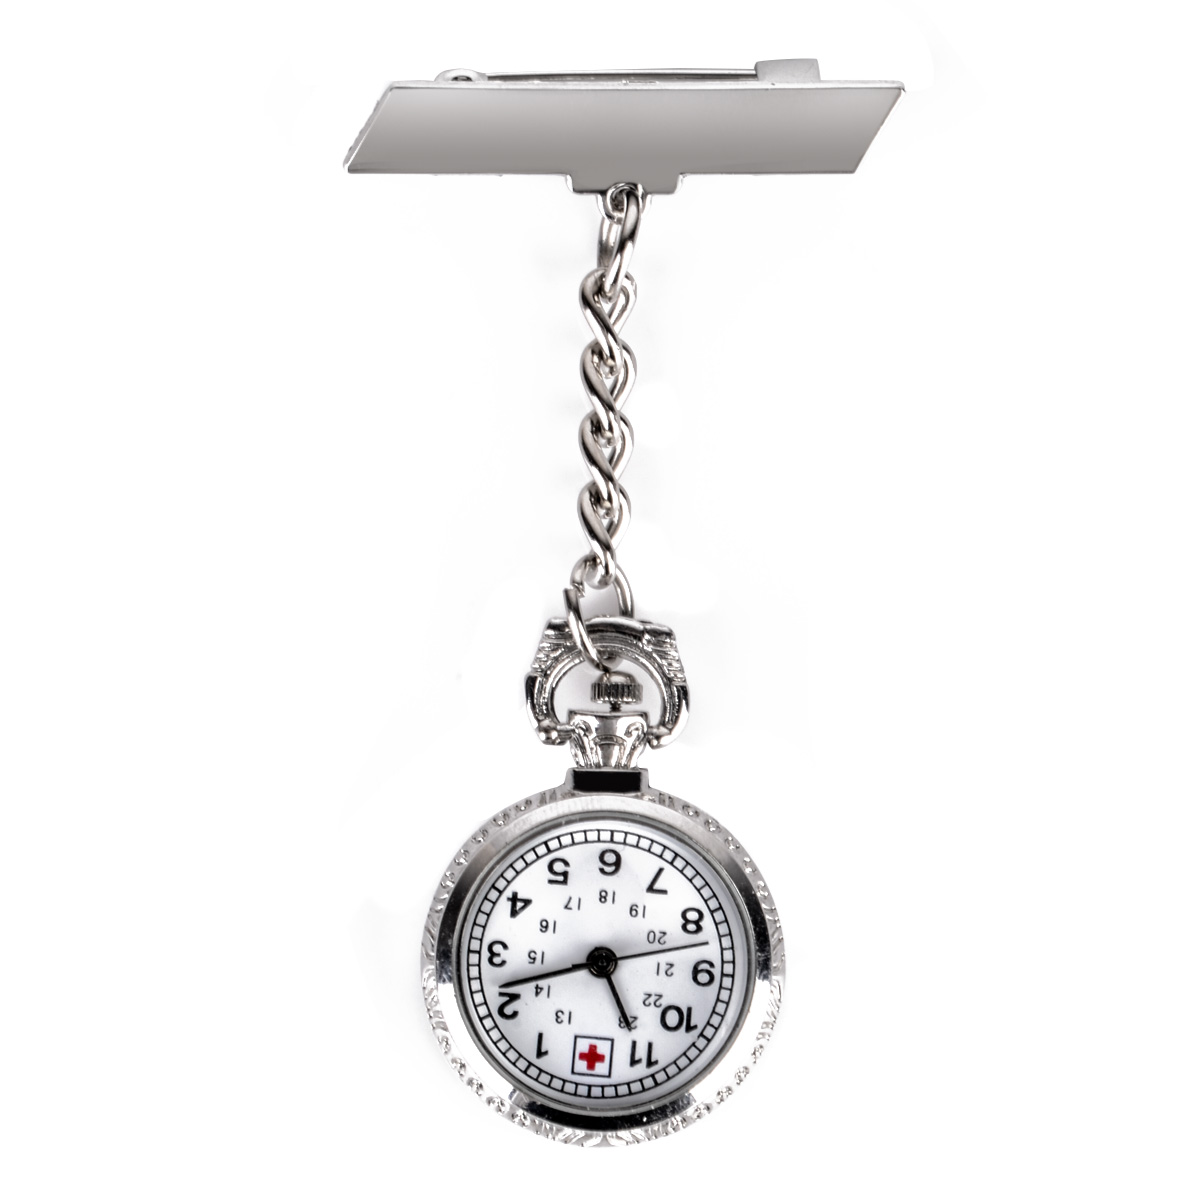 Fashion Medical Doctor Nurse Quartz Pocket Watches Silver Metal Chain Clip On Pendant Chain Man Women Clock Brooch Fob Watch